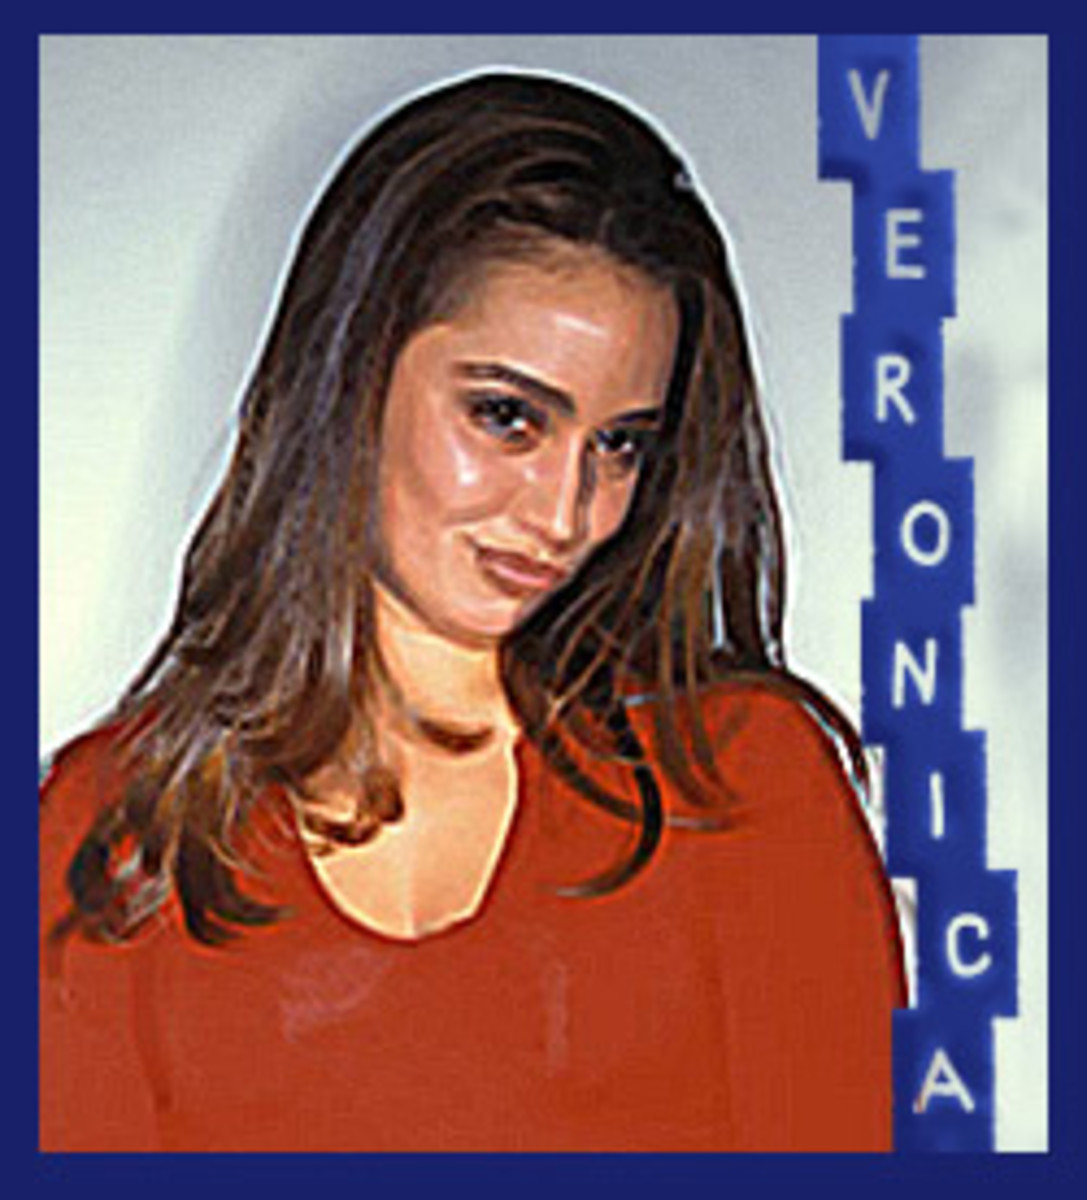 Remember Hot Real World/Road Rules Veronica Portillo?